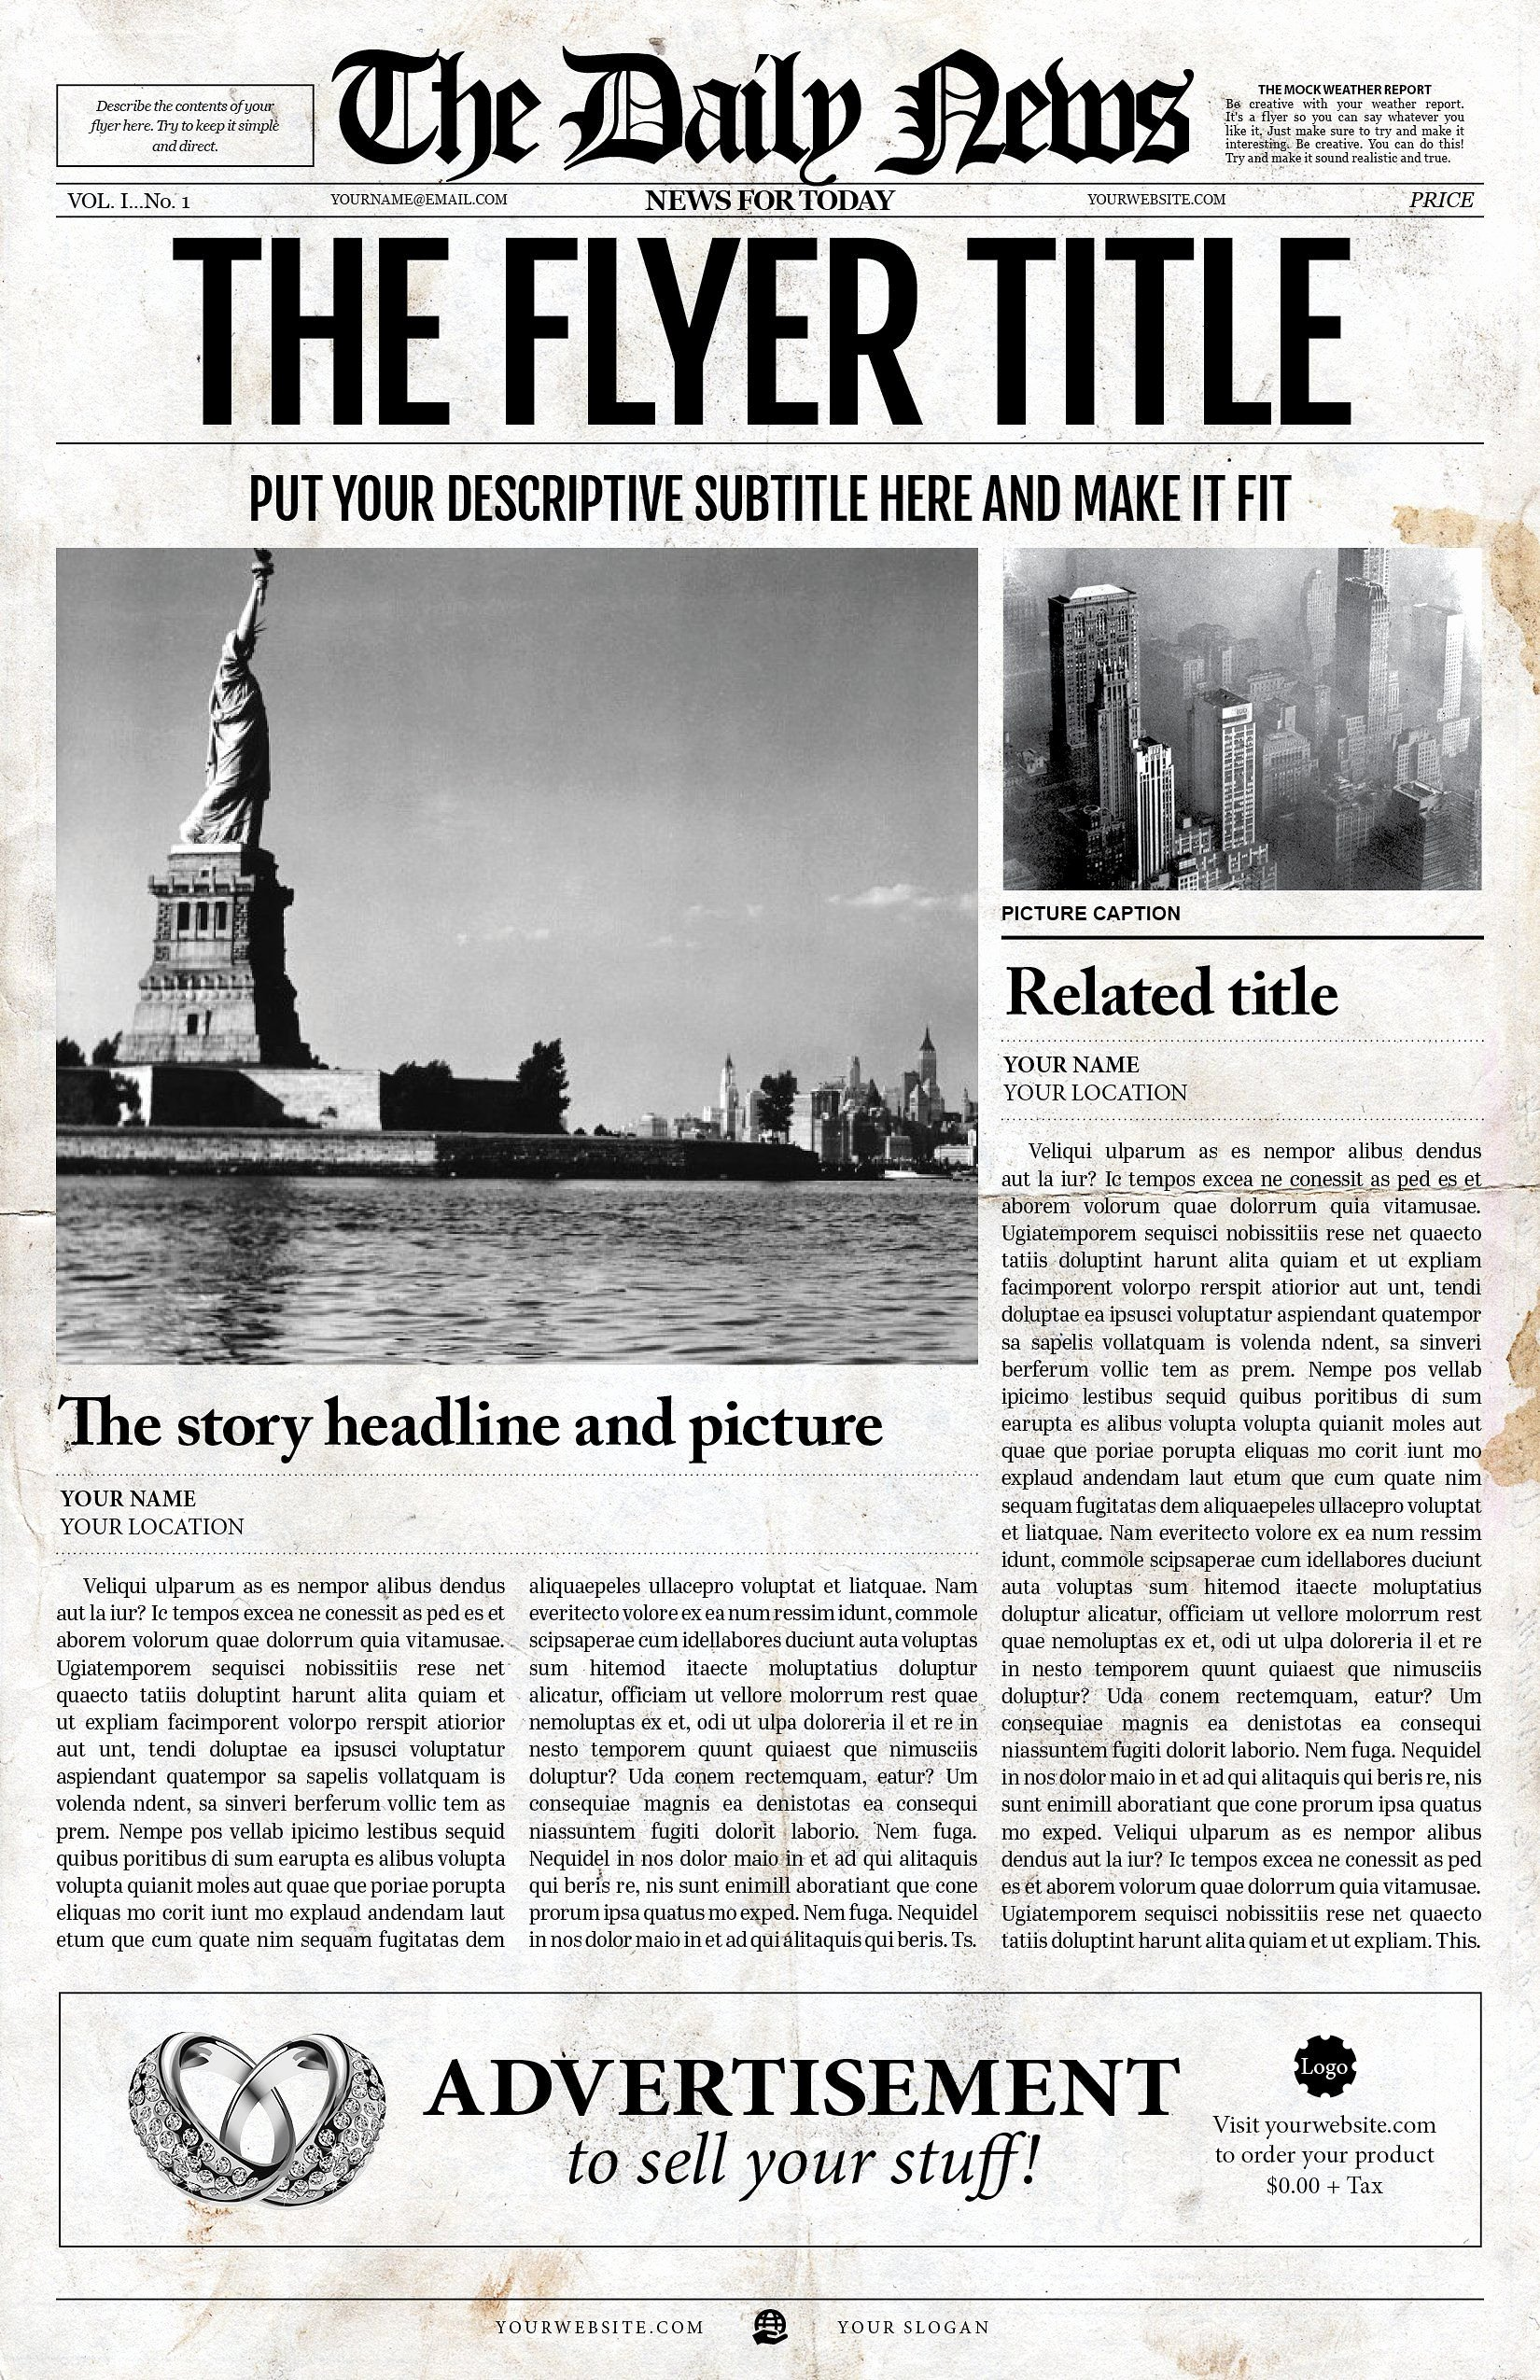 New York Times Newspaper Template Awesome 2x1 Page Newspaper Template Adobe Indesign 8 5x11 & 11x17 Inch